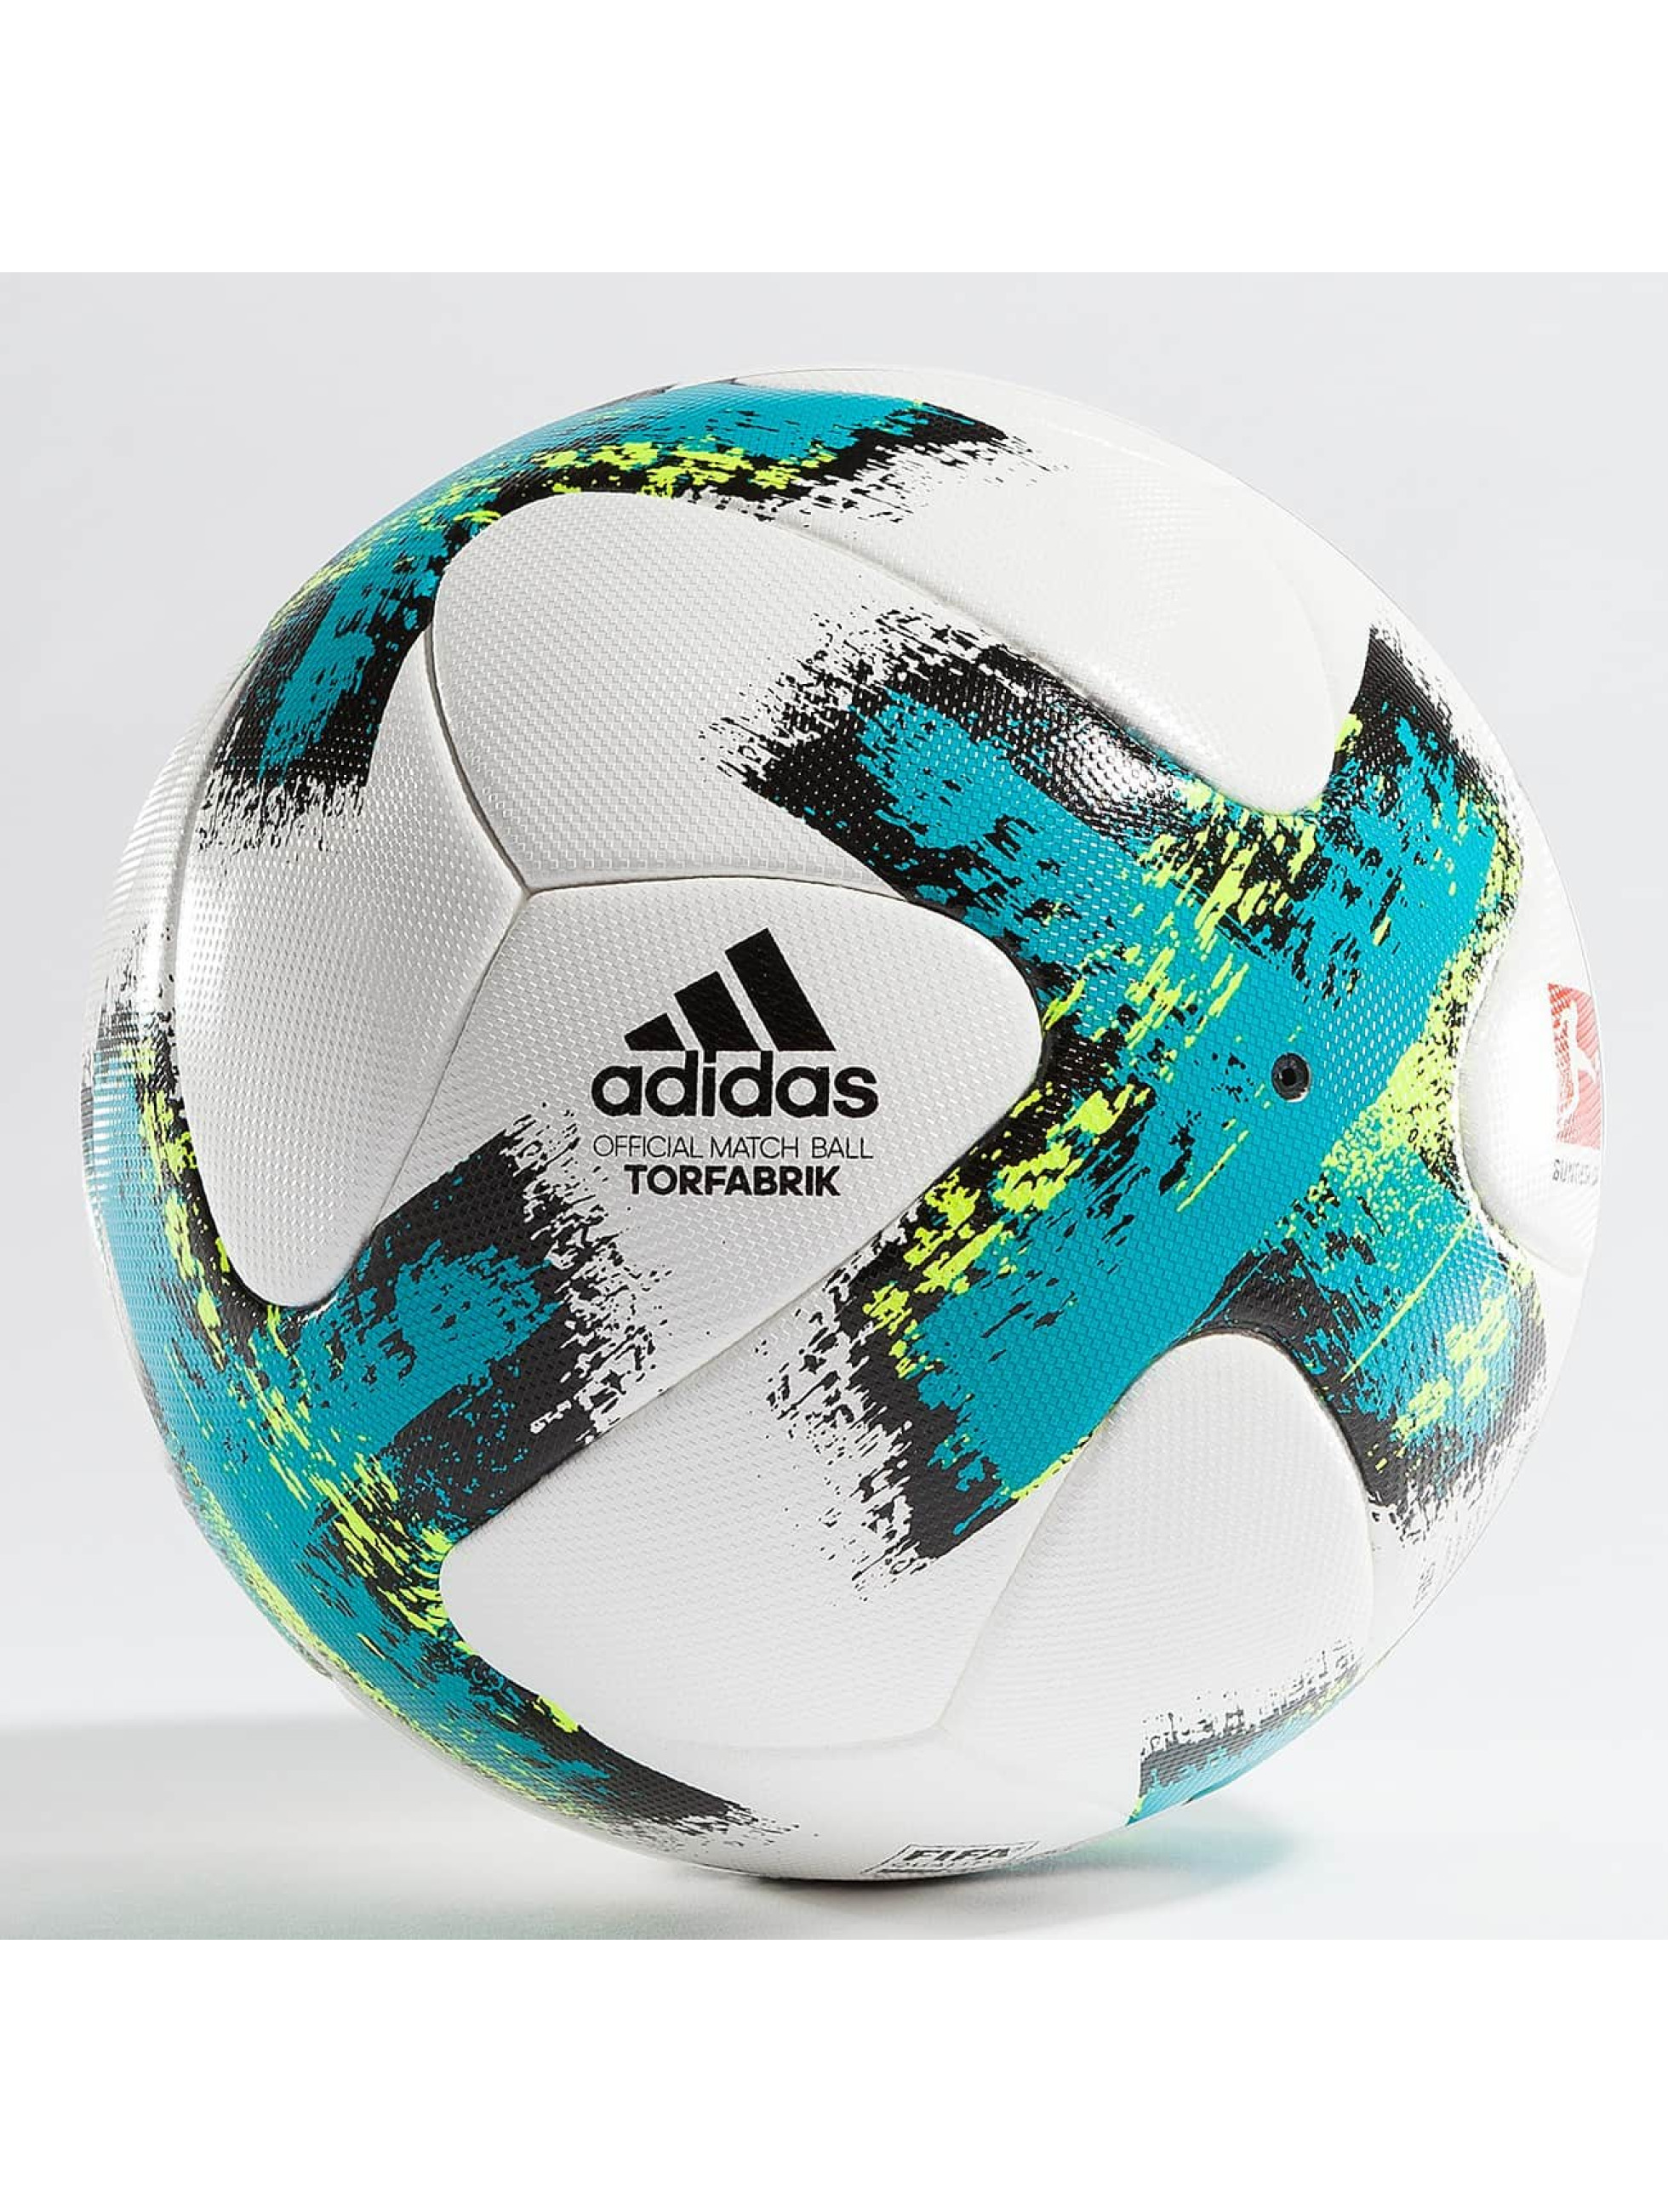 adidas Performance Baller Torfabrik Offical Match Ball hvit